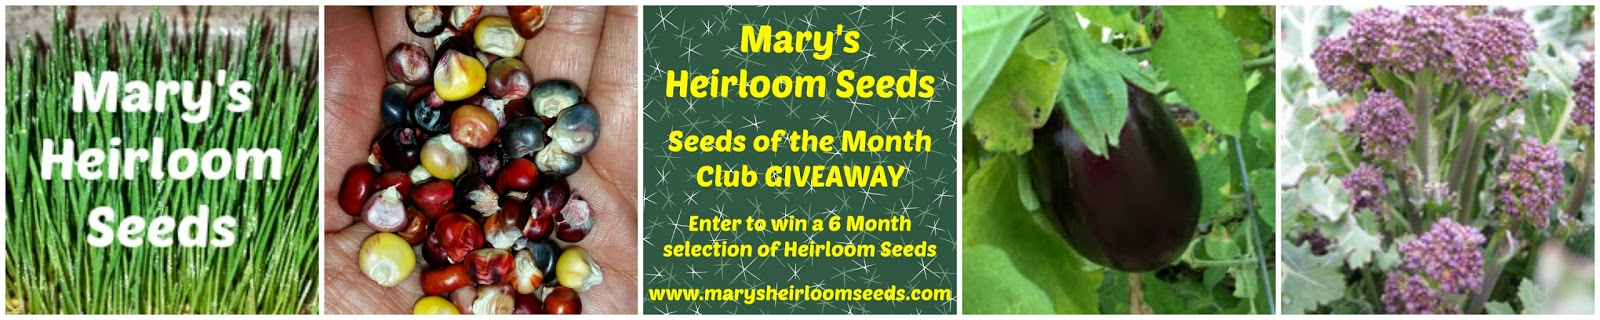 Organic Heirloom Seed from Mary's Heirloom Seeds - Enter the Giveaway | PreparednessMama